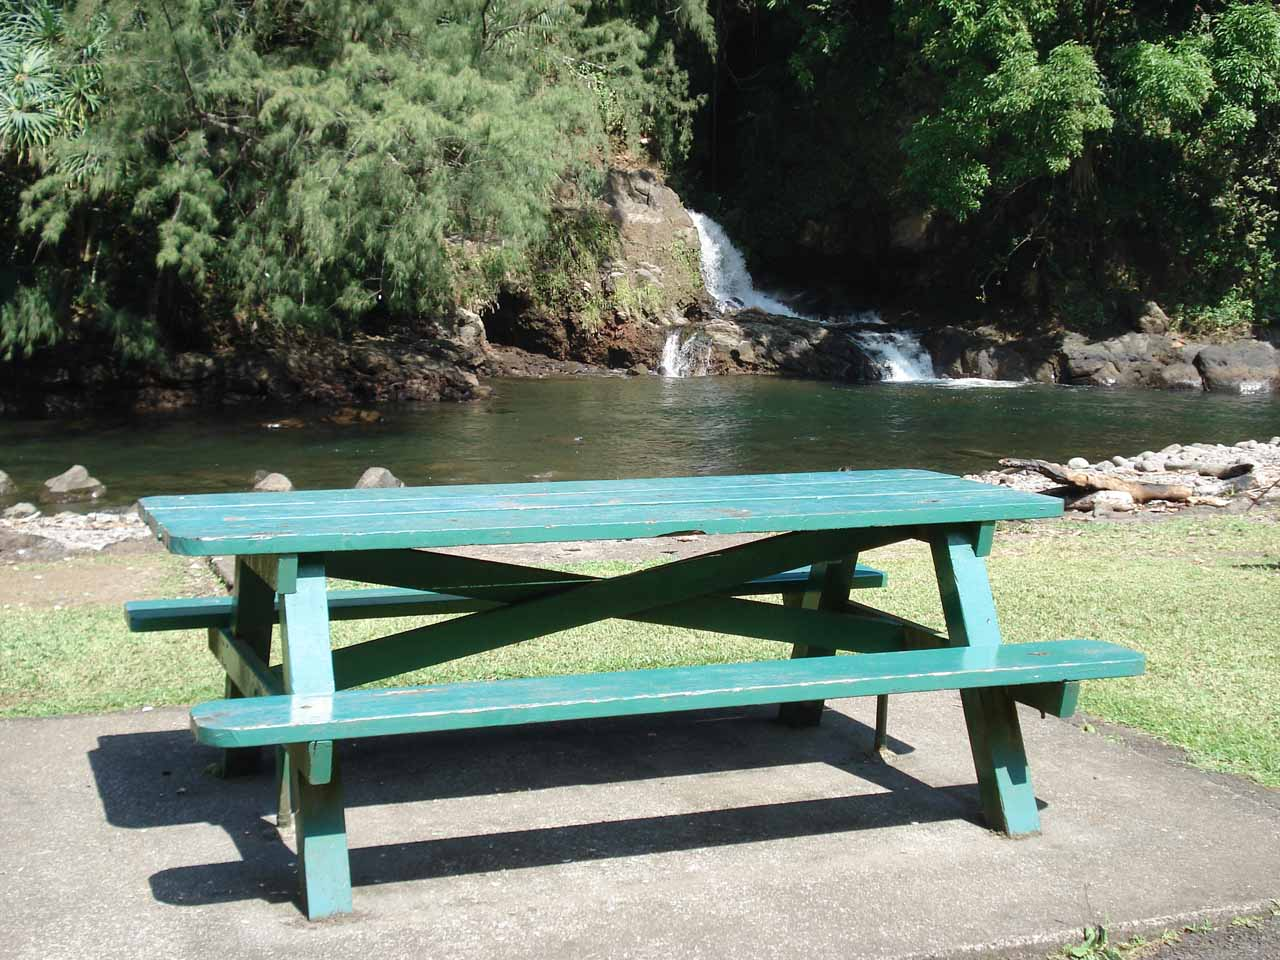 A picnic table before Kolekole Falls, suggesting that this is also a nice little picnic spot